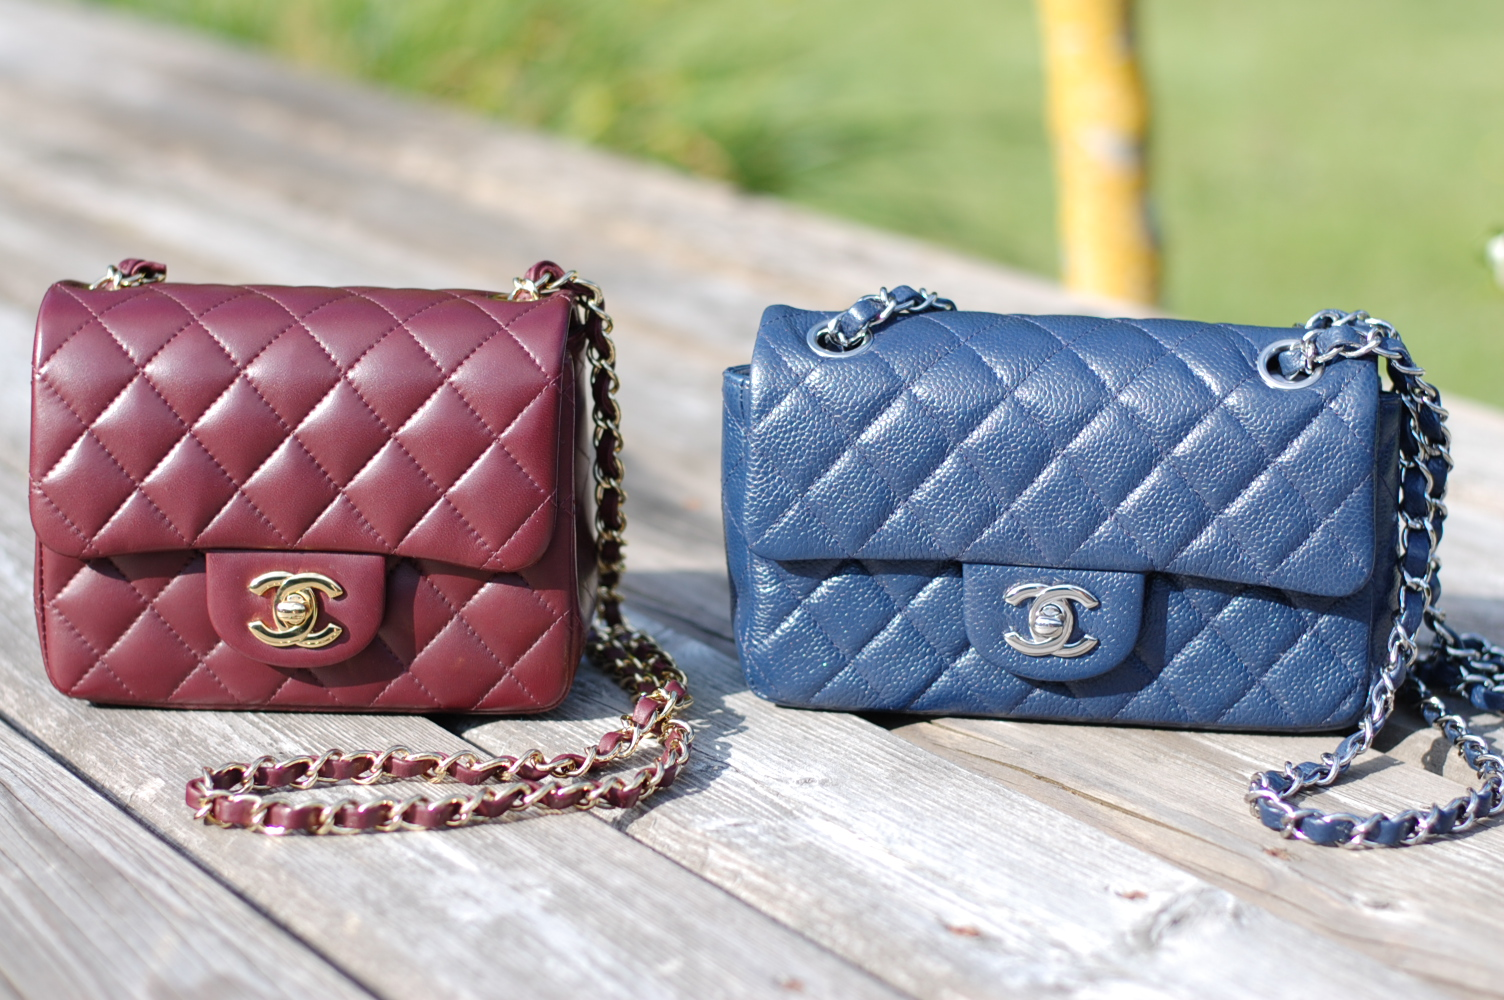 b5b24097da0a Chanel Timeless Classic Mini Flap handbags: A friendly comparison ...